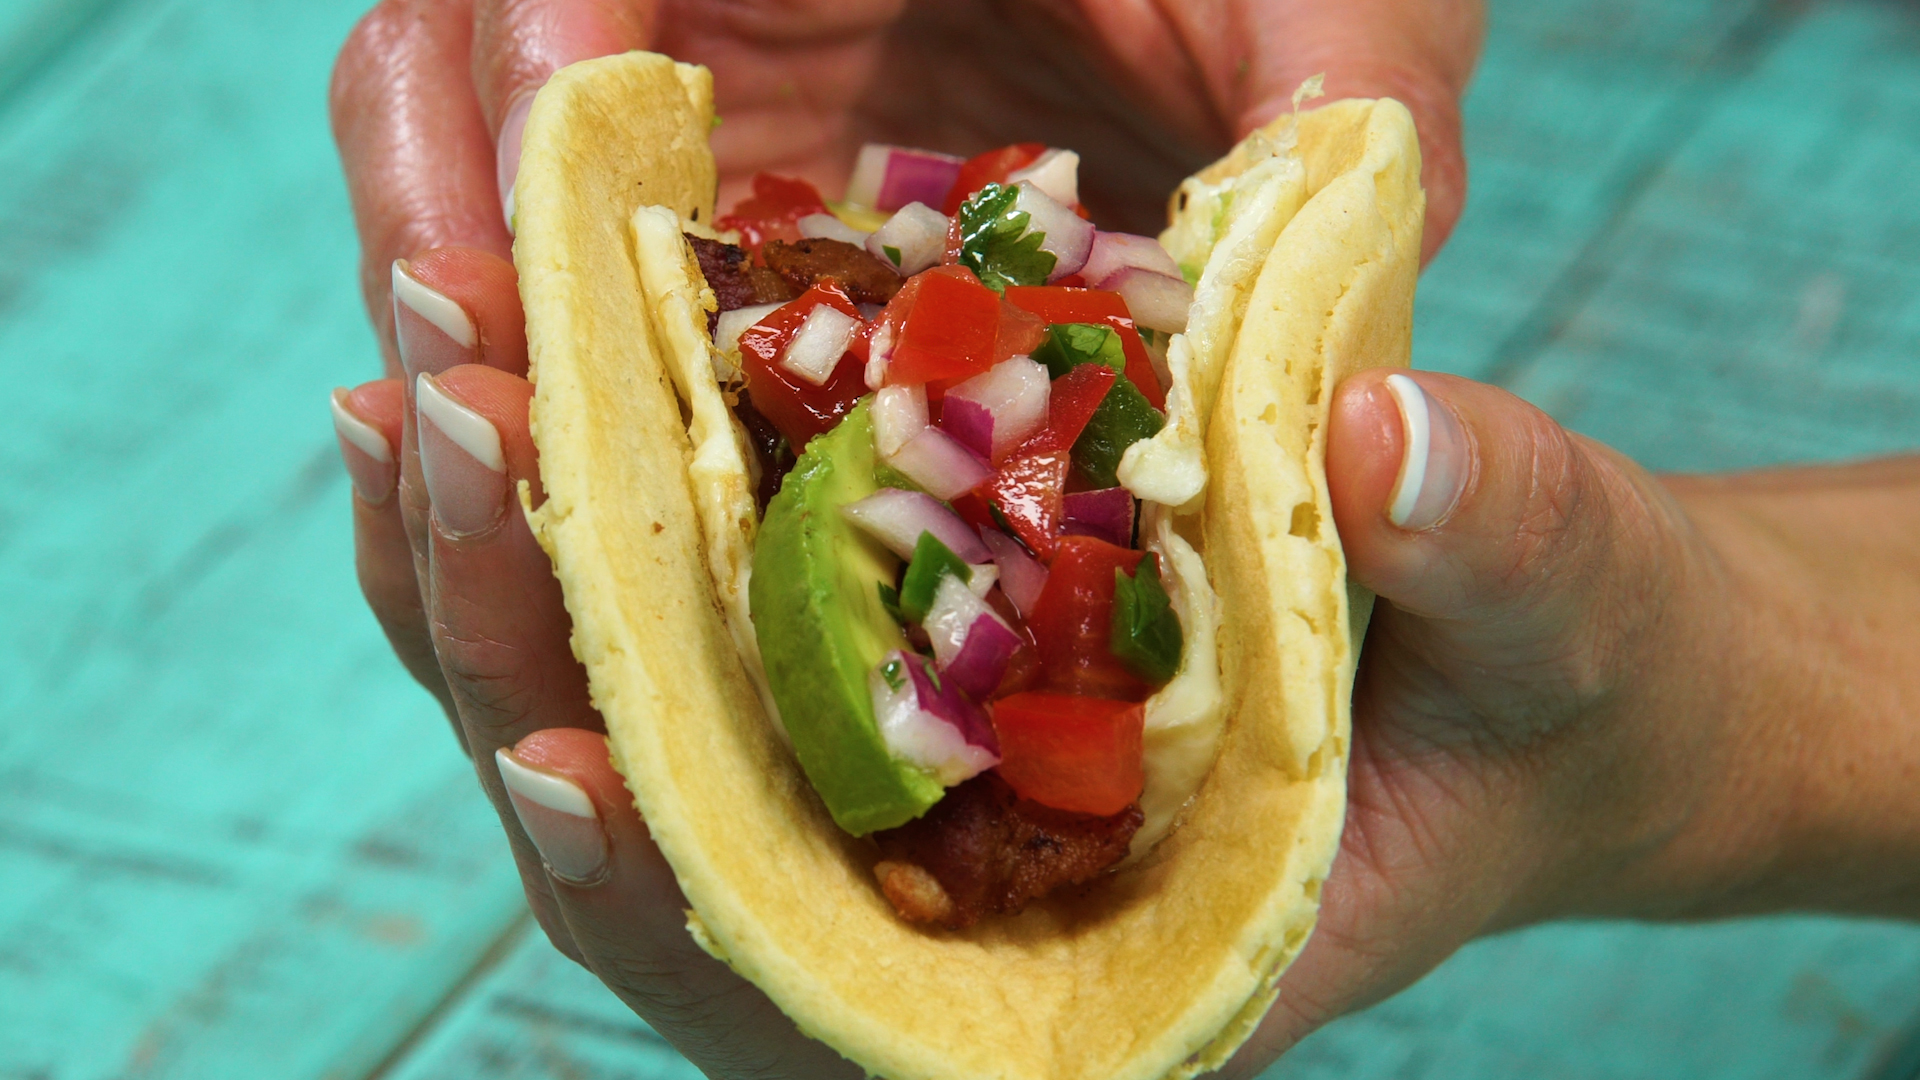 Pancake Tacos: How Have We Not Thought of This Sooner?